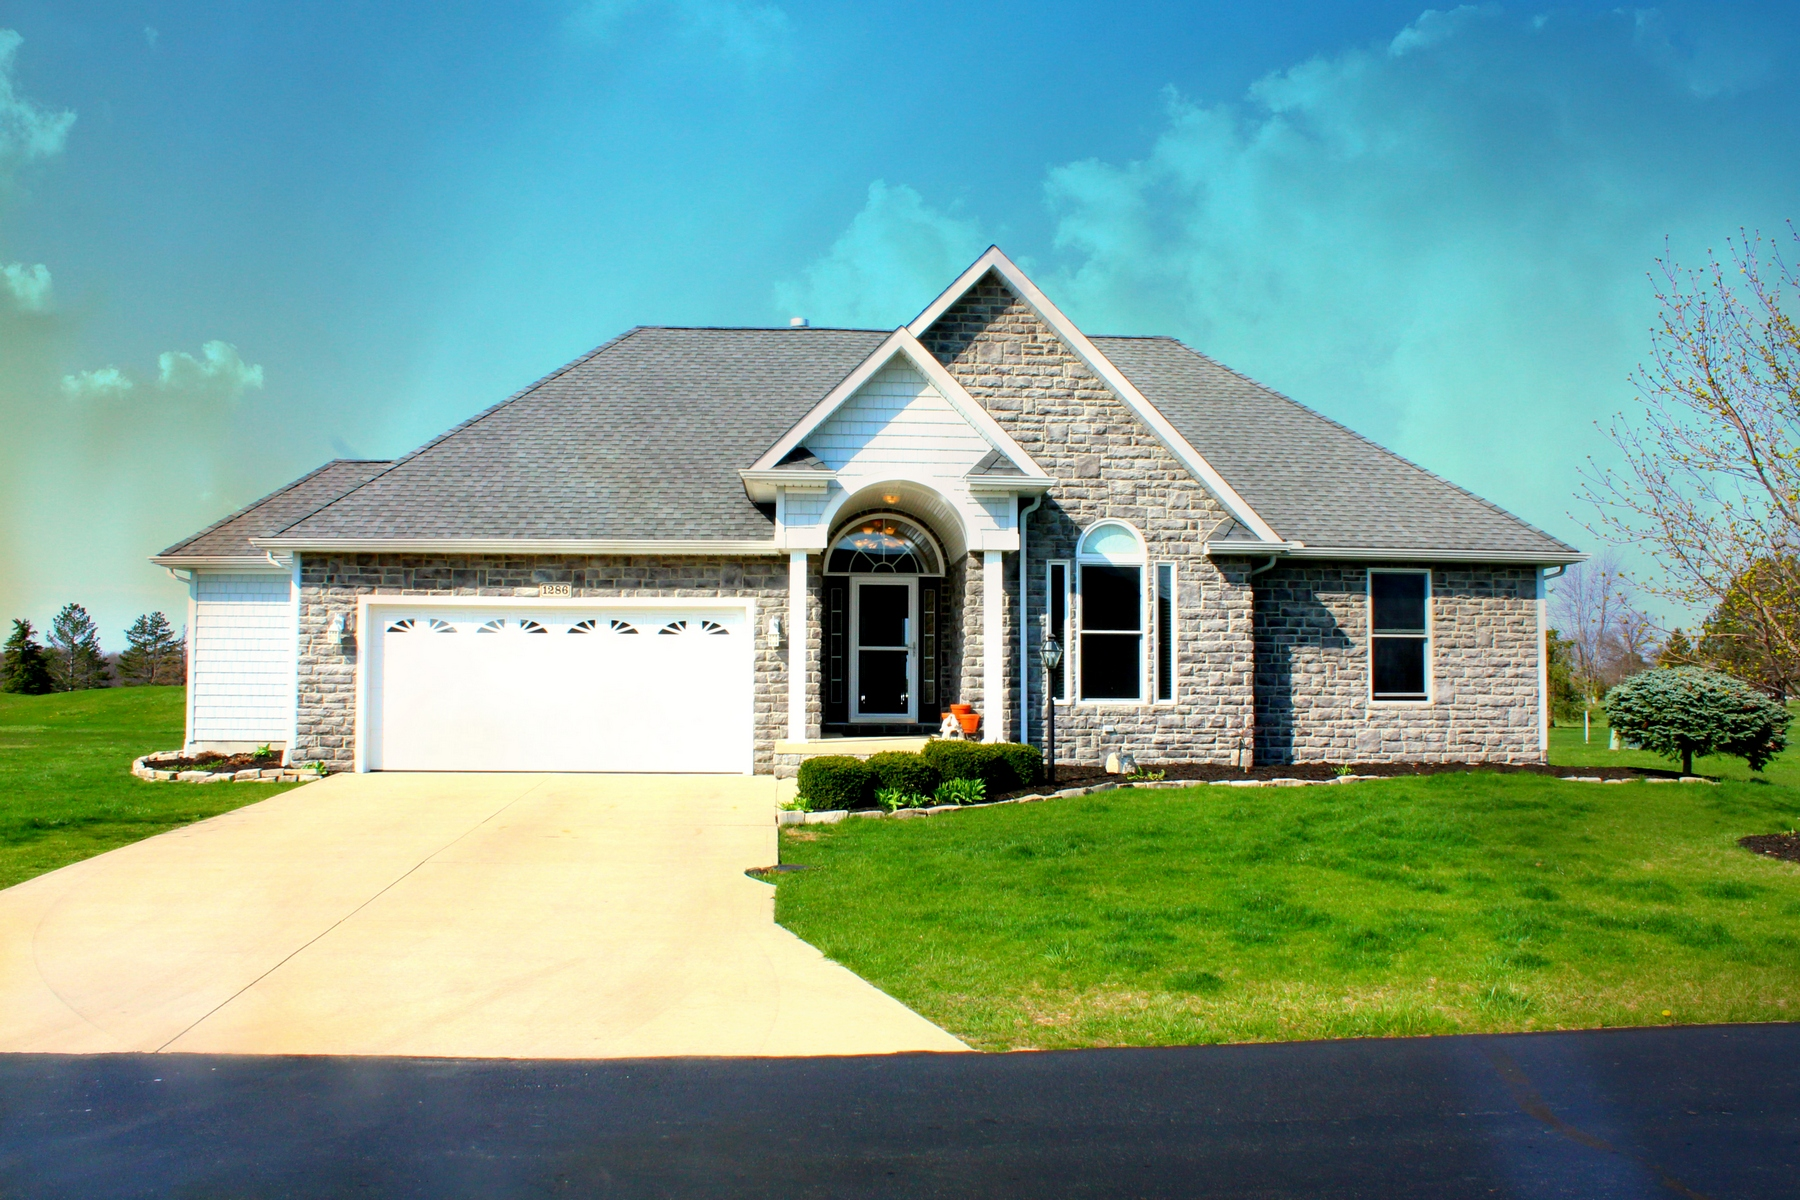 Single Family Home for Sale at 1286 S. Grandview Drive 1286 S. Grandview Road Oak Harbor, Ohio 43449 United States